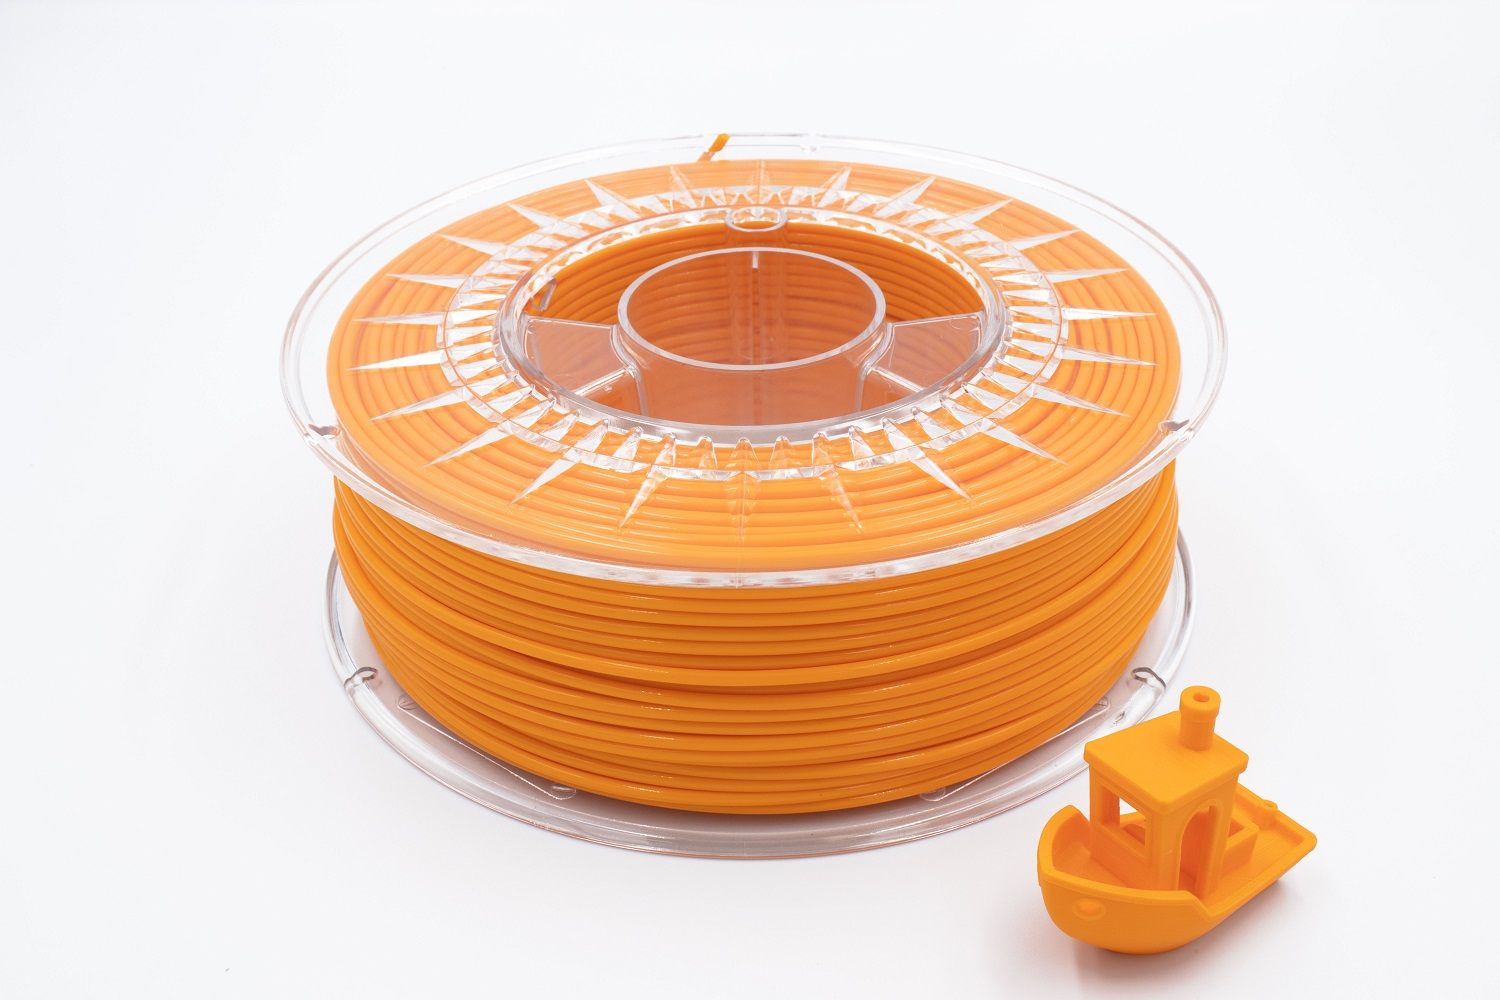 More info on Orange Crush Filament